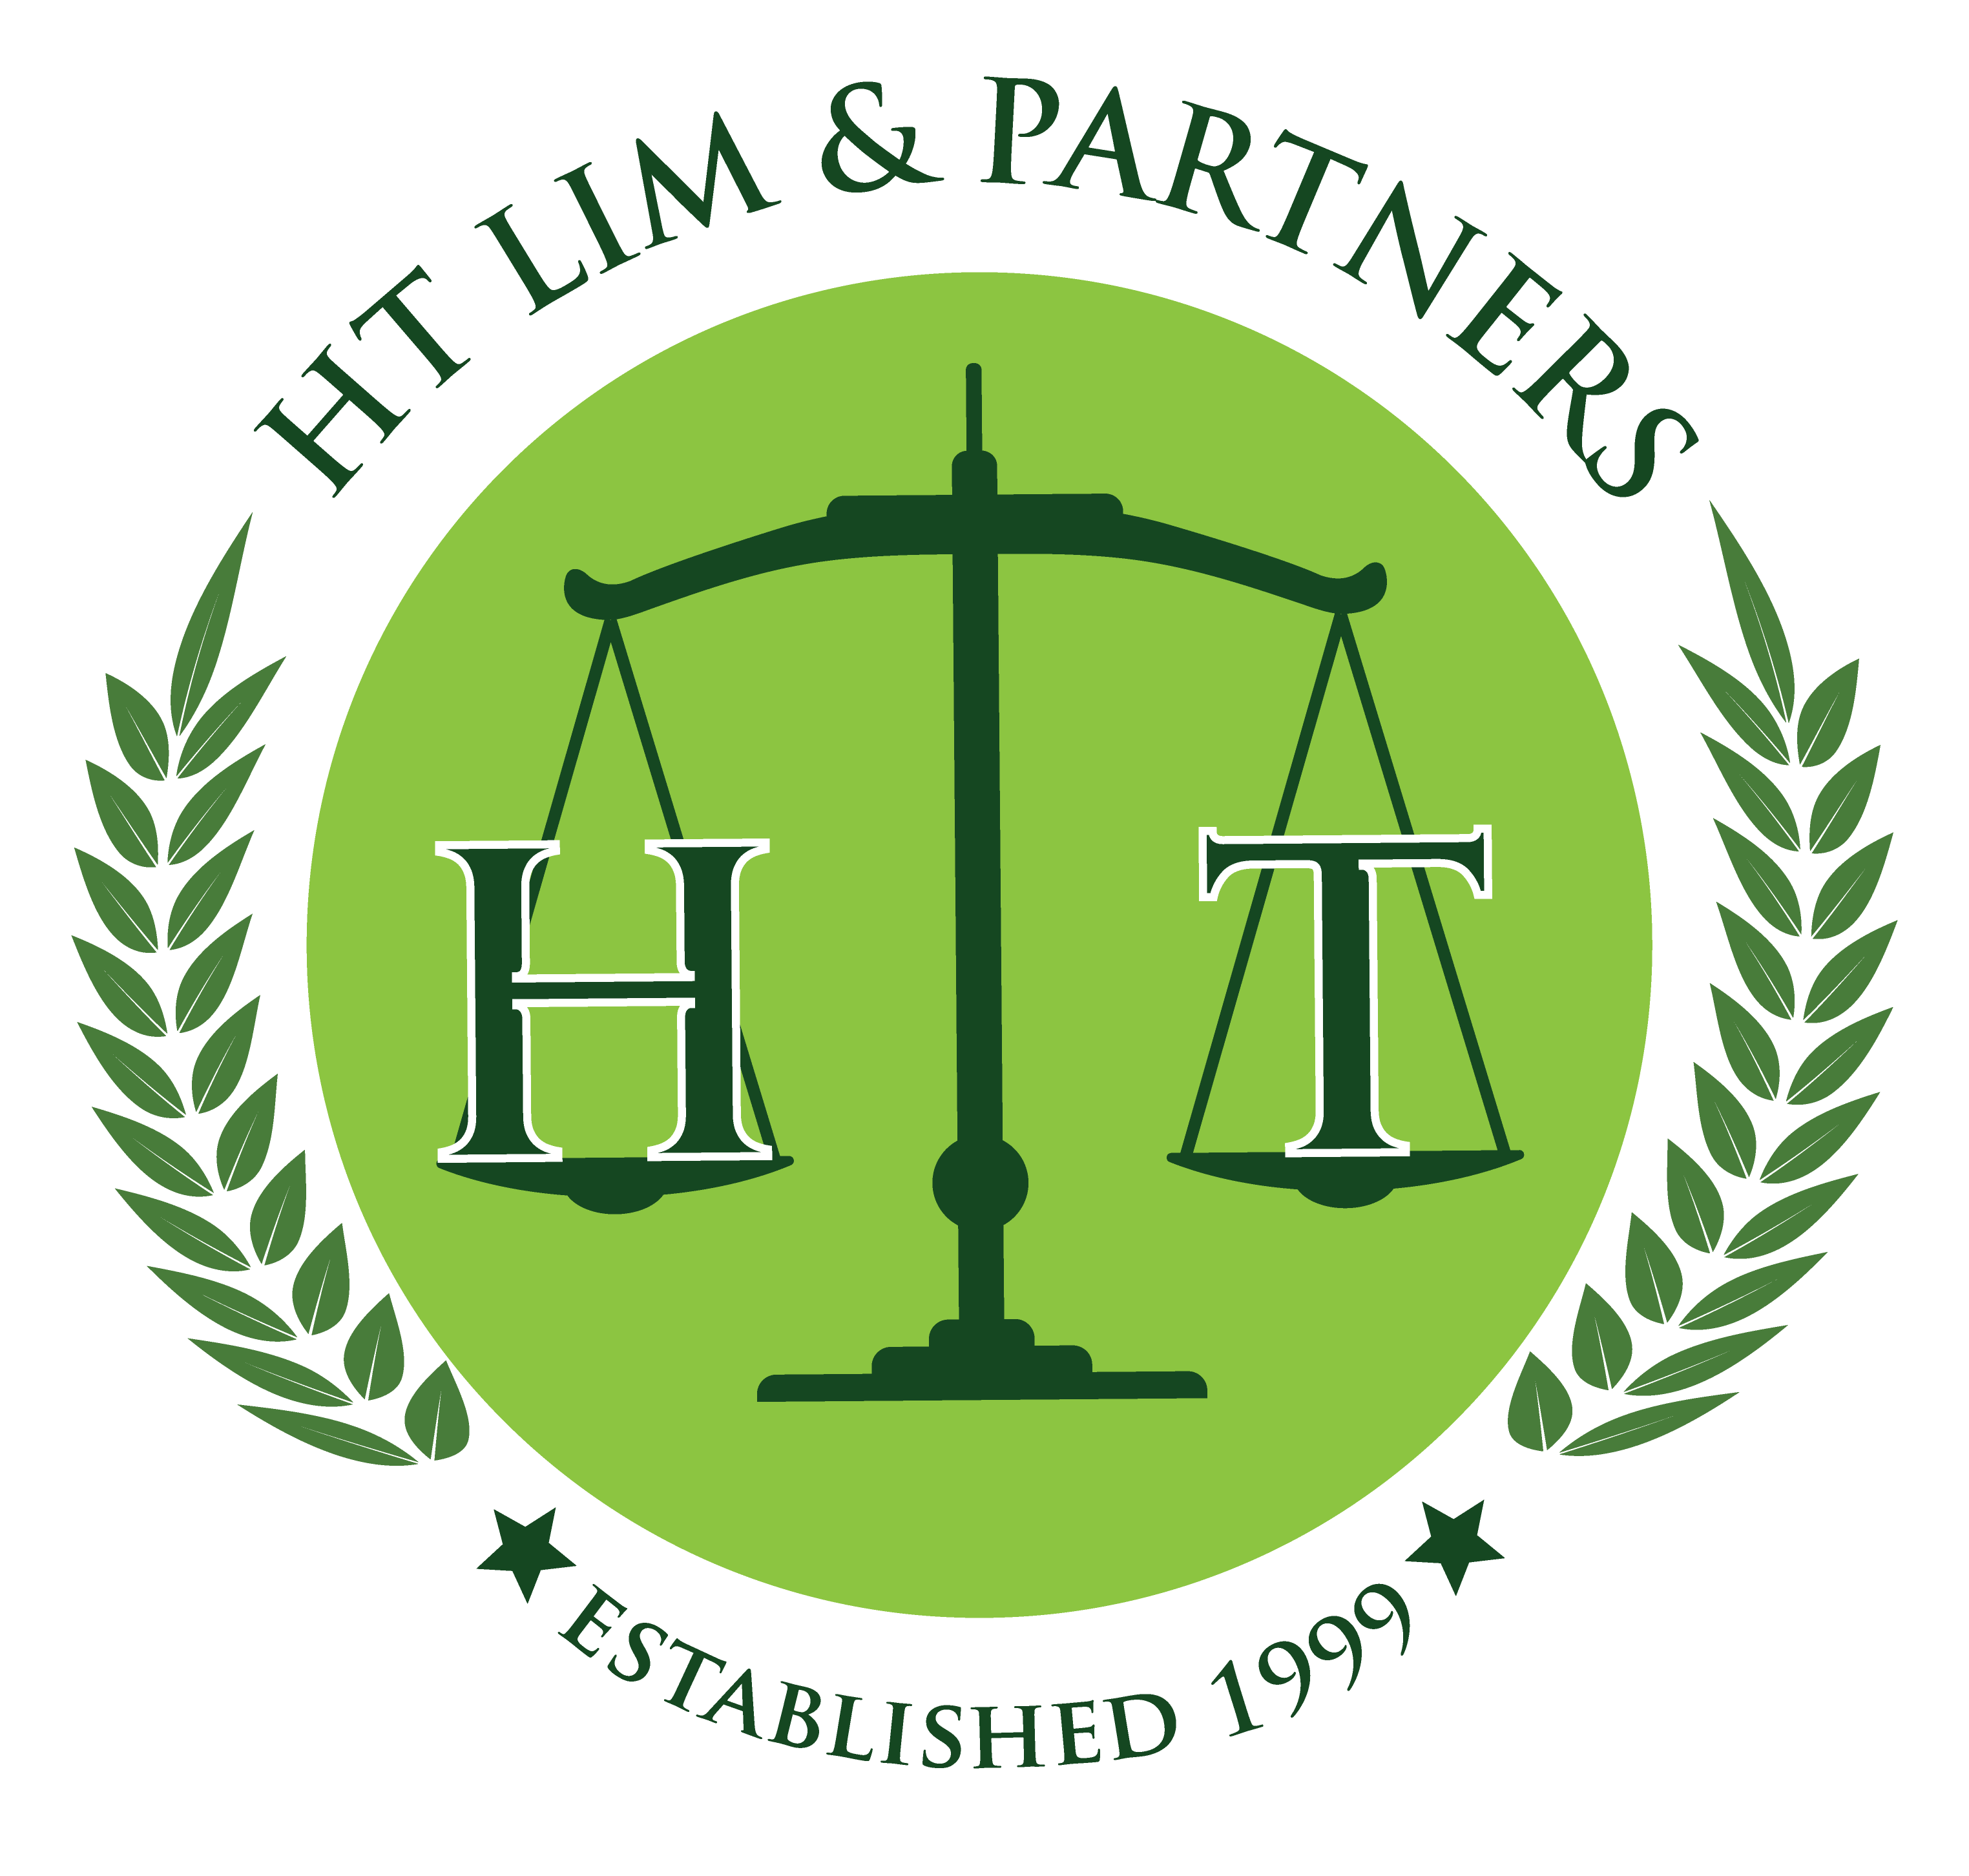 H T LIM & PARTNERS